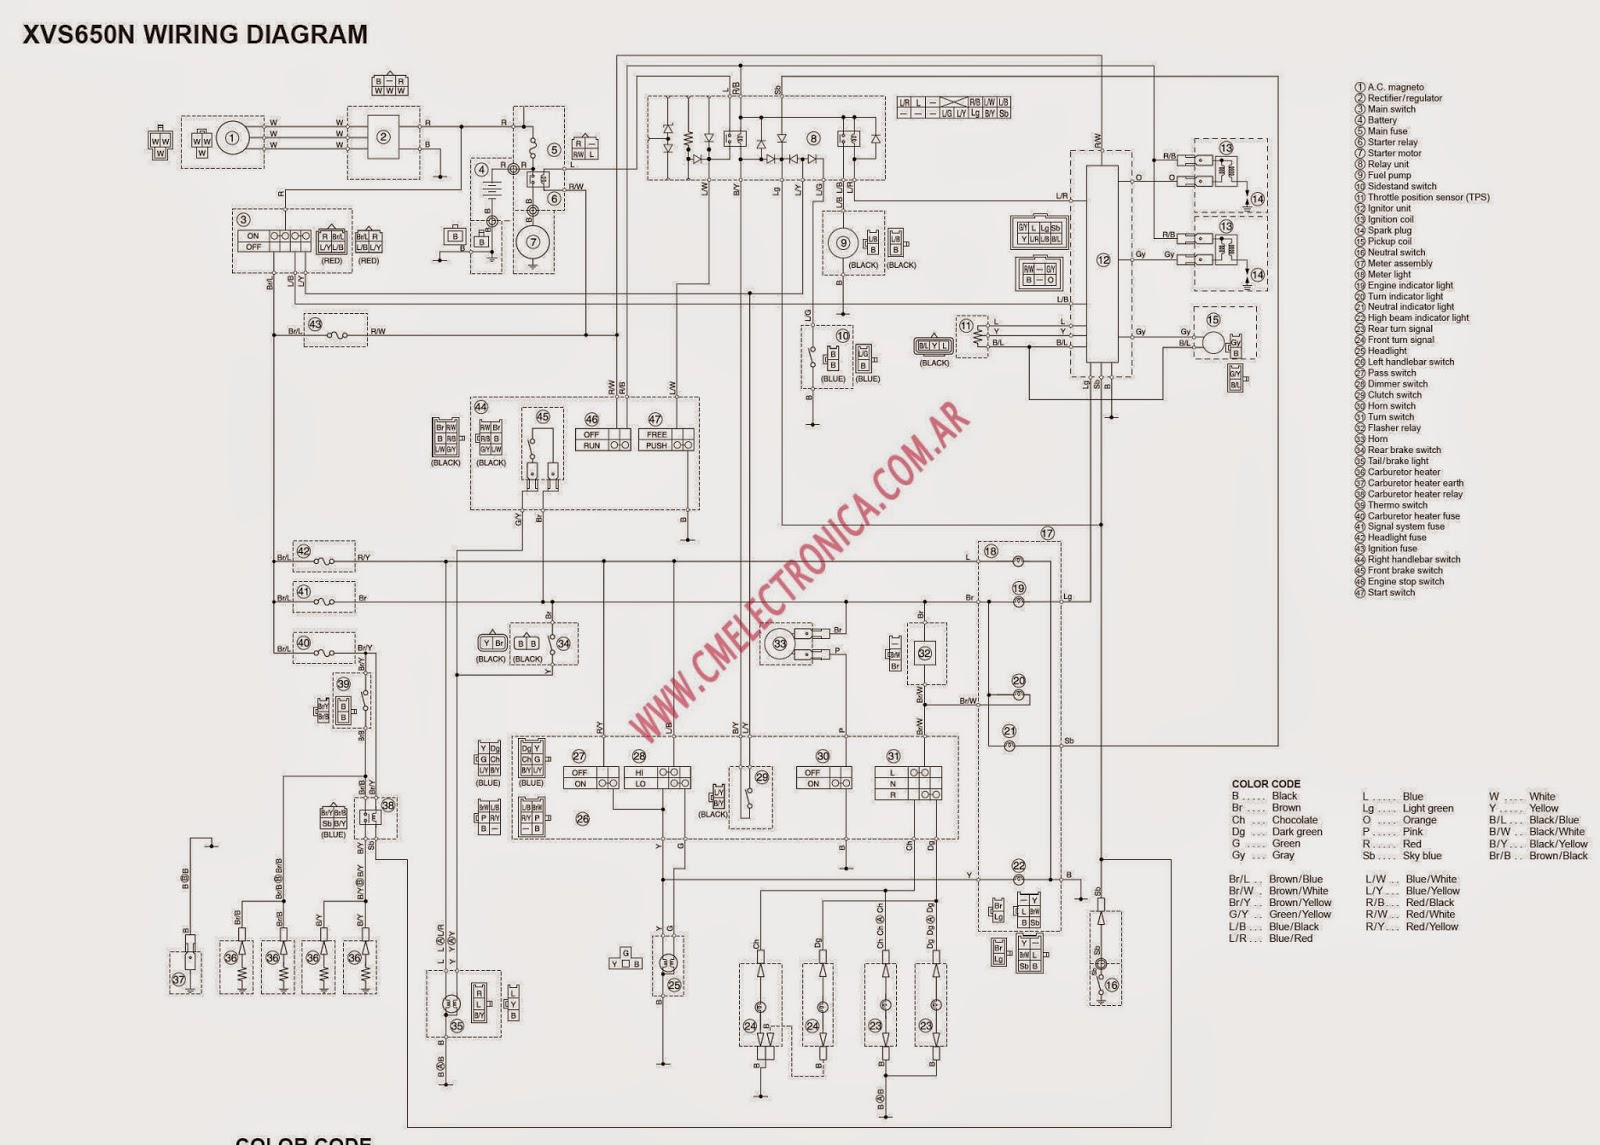 v star 650 wiring diagram wiring diagram rh vw31 vom winnenthal de 2003 yamaha v star 1100 wiring diagram 2003 yamaha v star 1100 wiring diagram